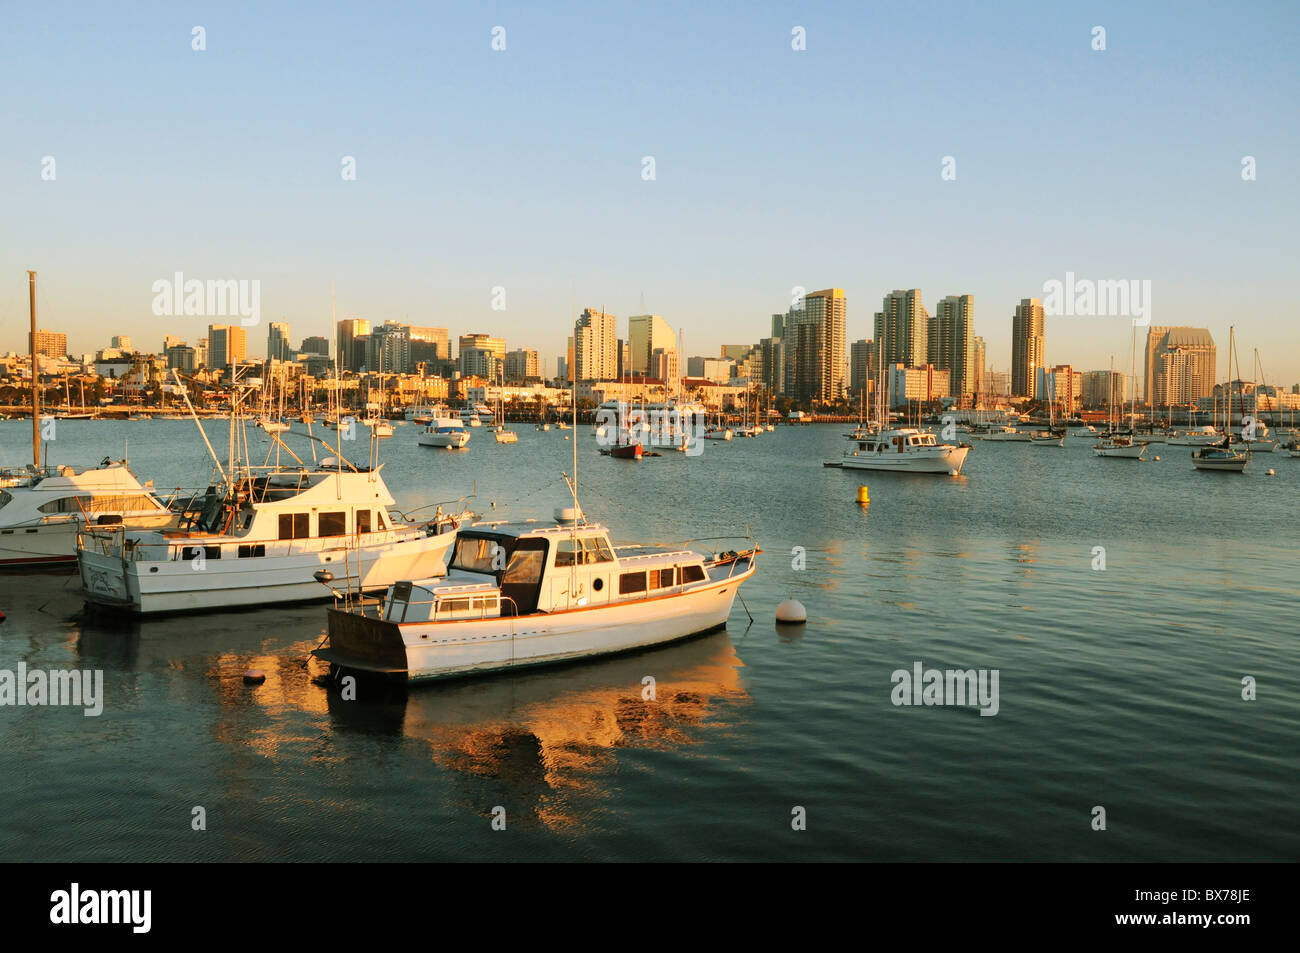 San Diego yacht harbor and bay with boats moored and anchored below city skyline at sunset - Stock Image